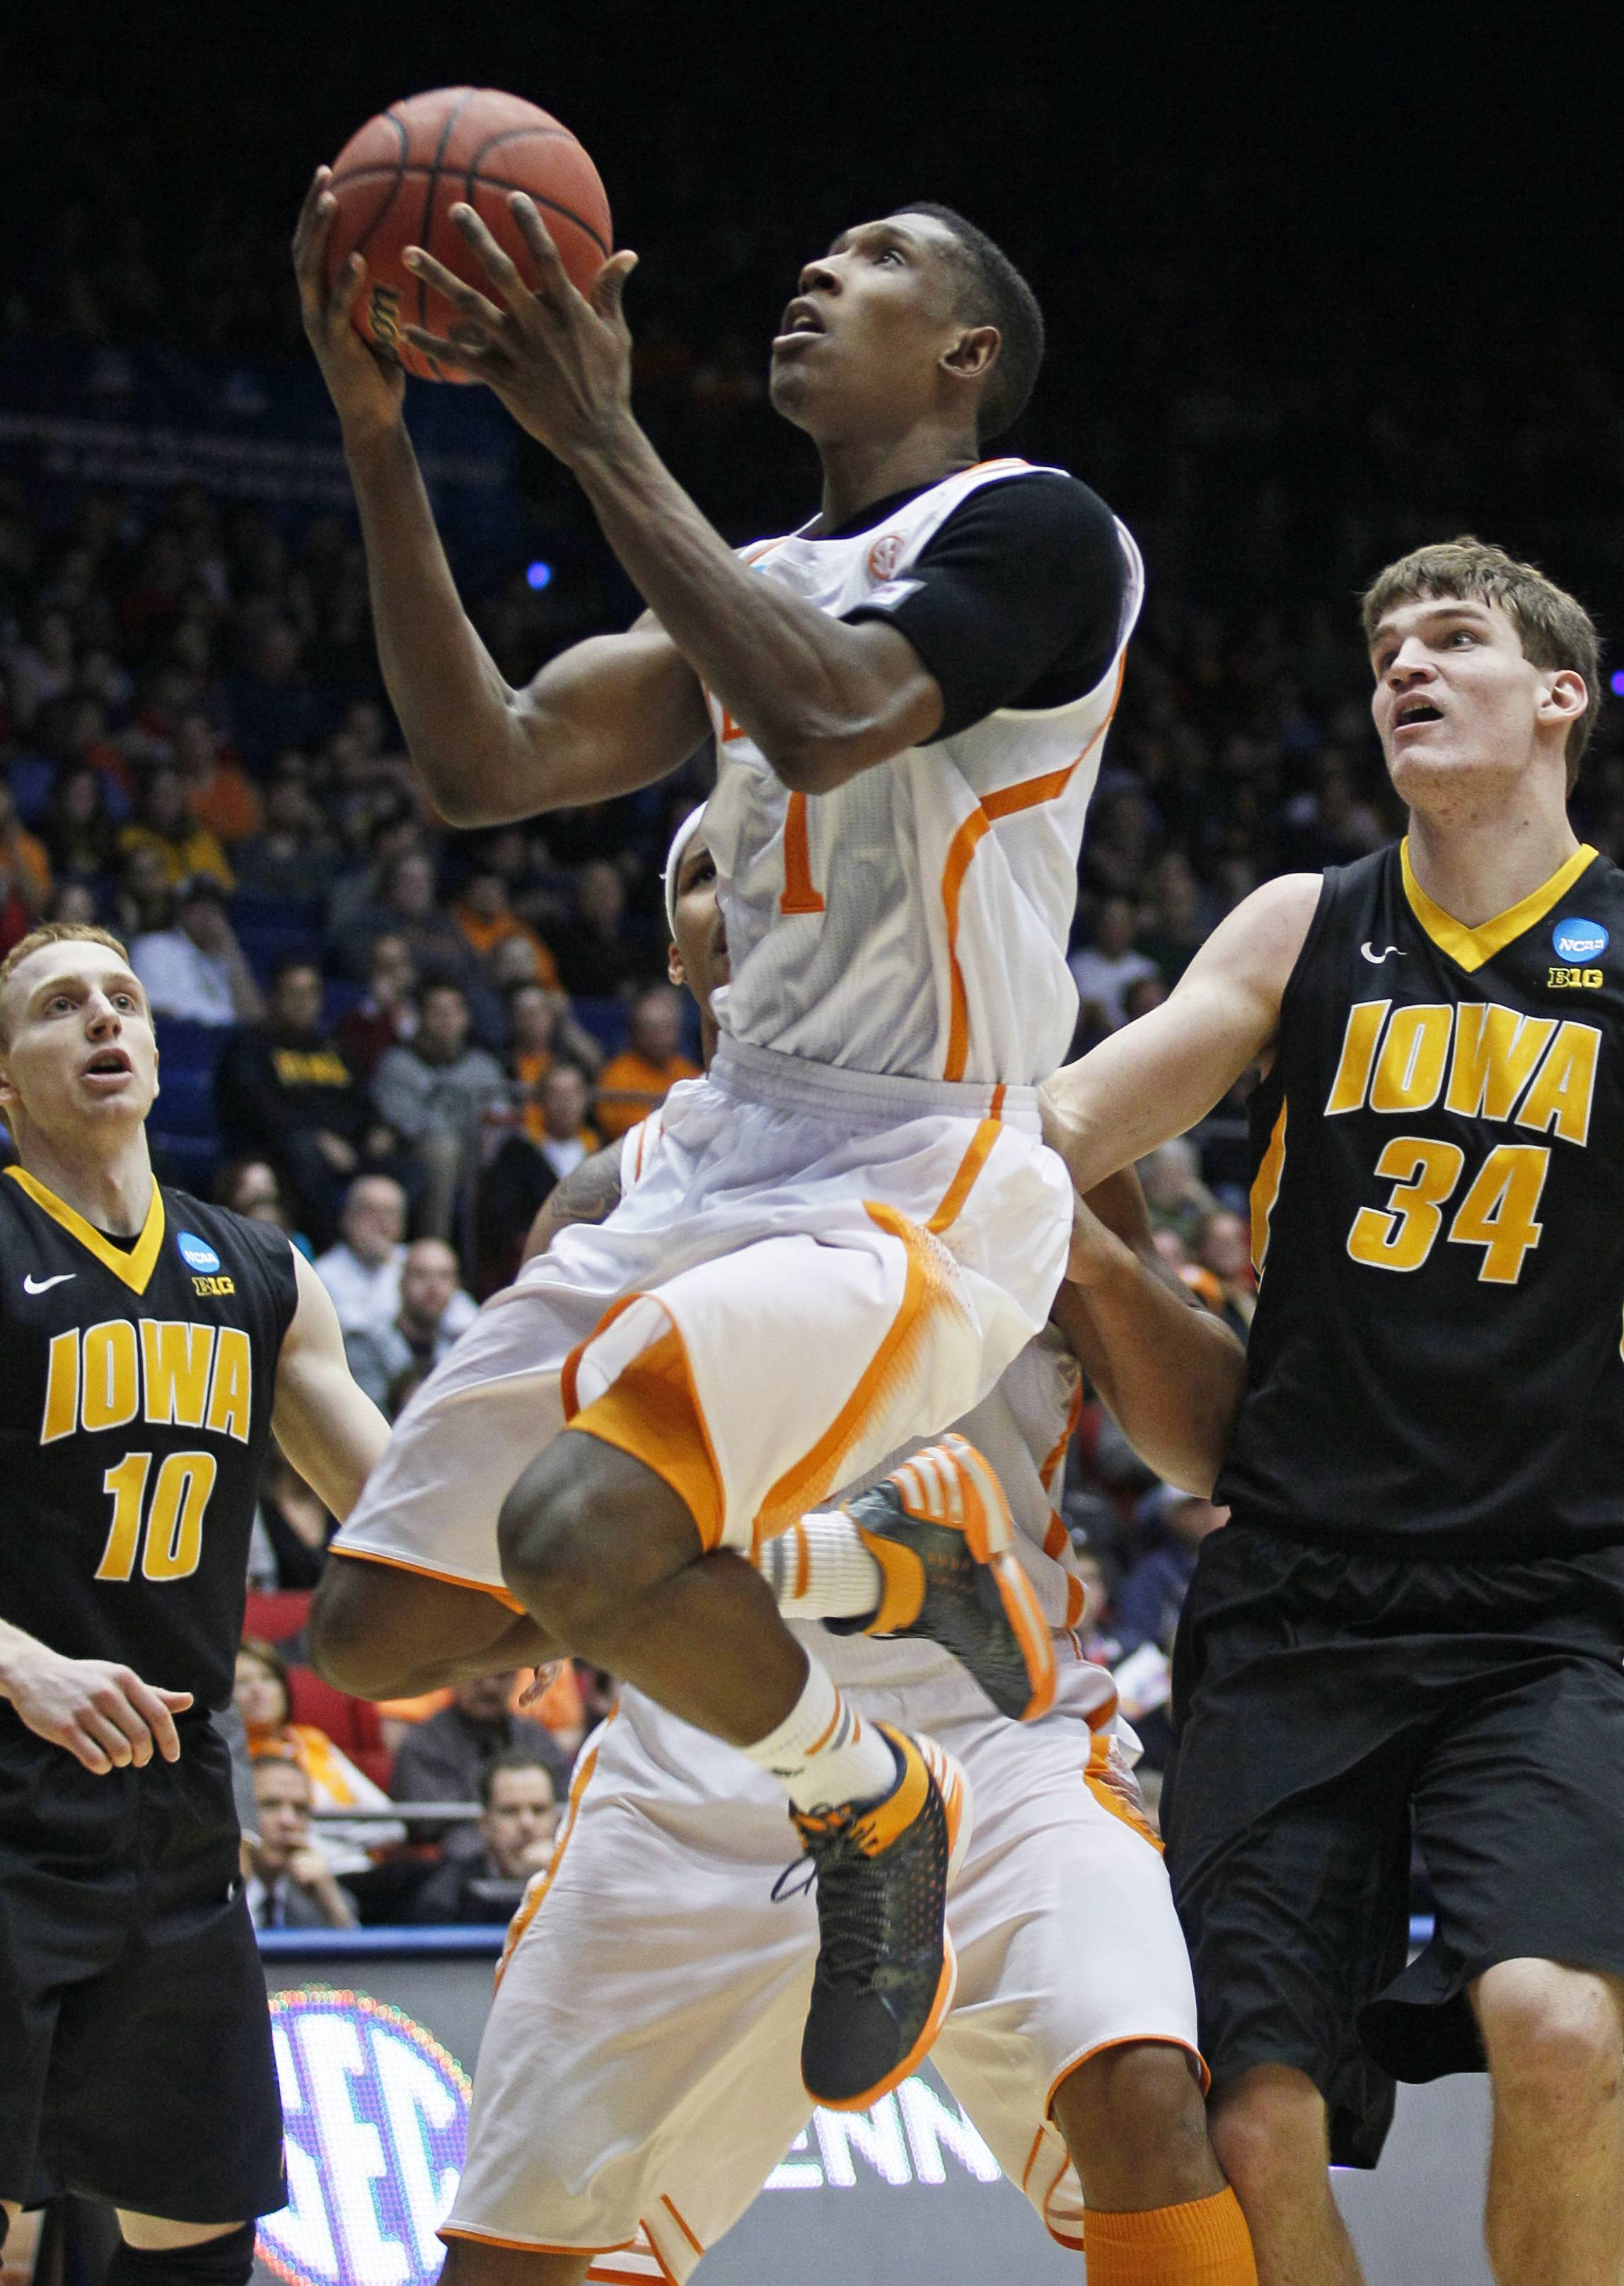 Associated PressTennessee guard Josh Richardson (1) drives between Iowa guard Mike Gesell (10) and center Adam Woodbury (34) in the second half of a first-round game of the NCAA college basketball tournament on Wednesday in Dayton, Ohio.